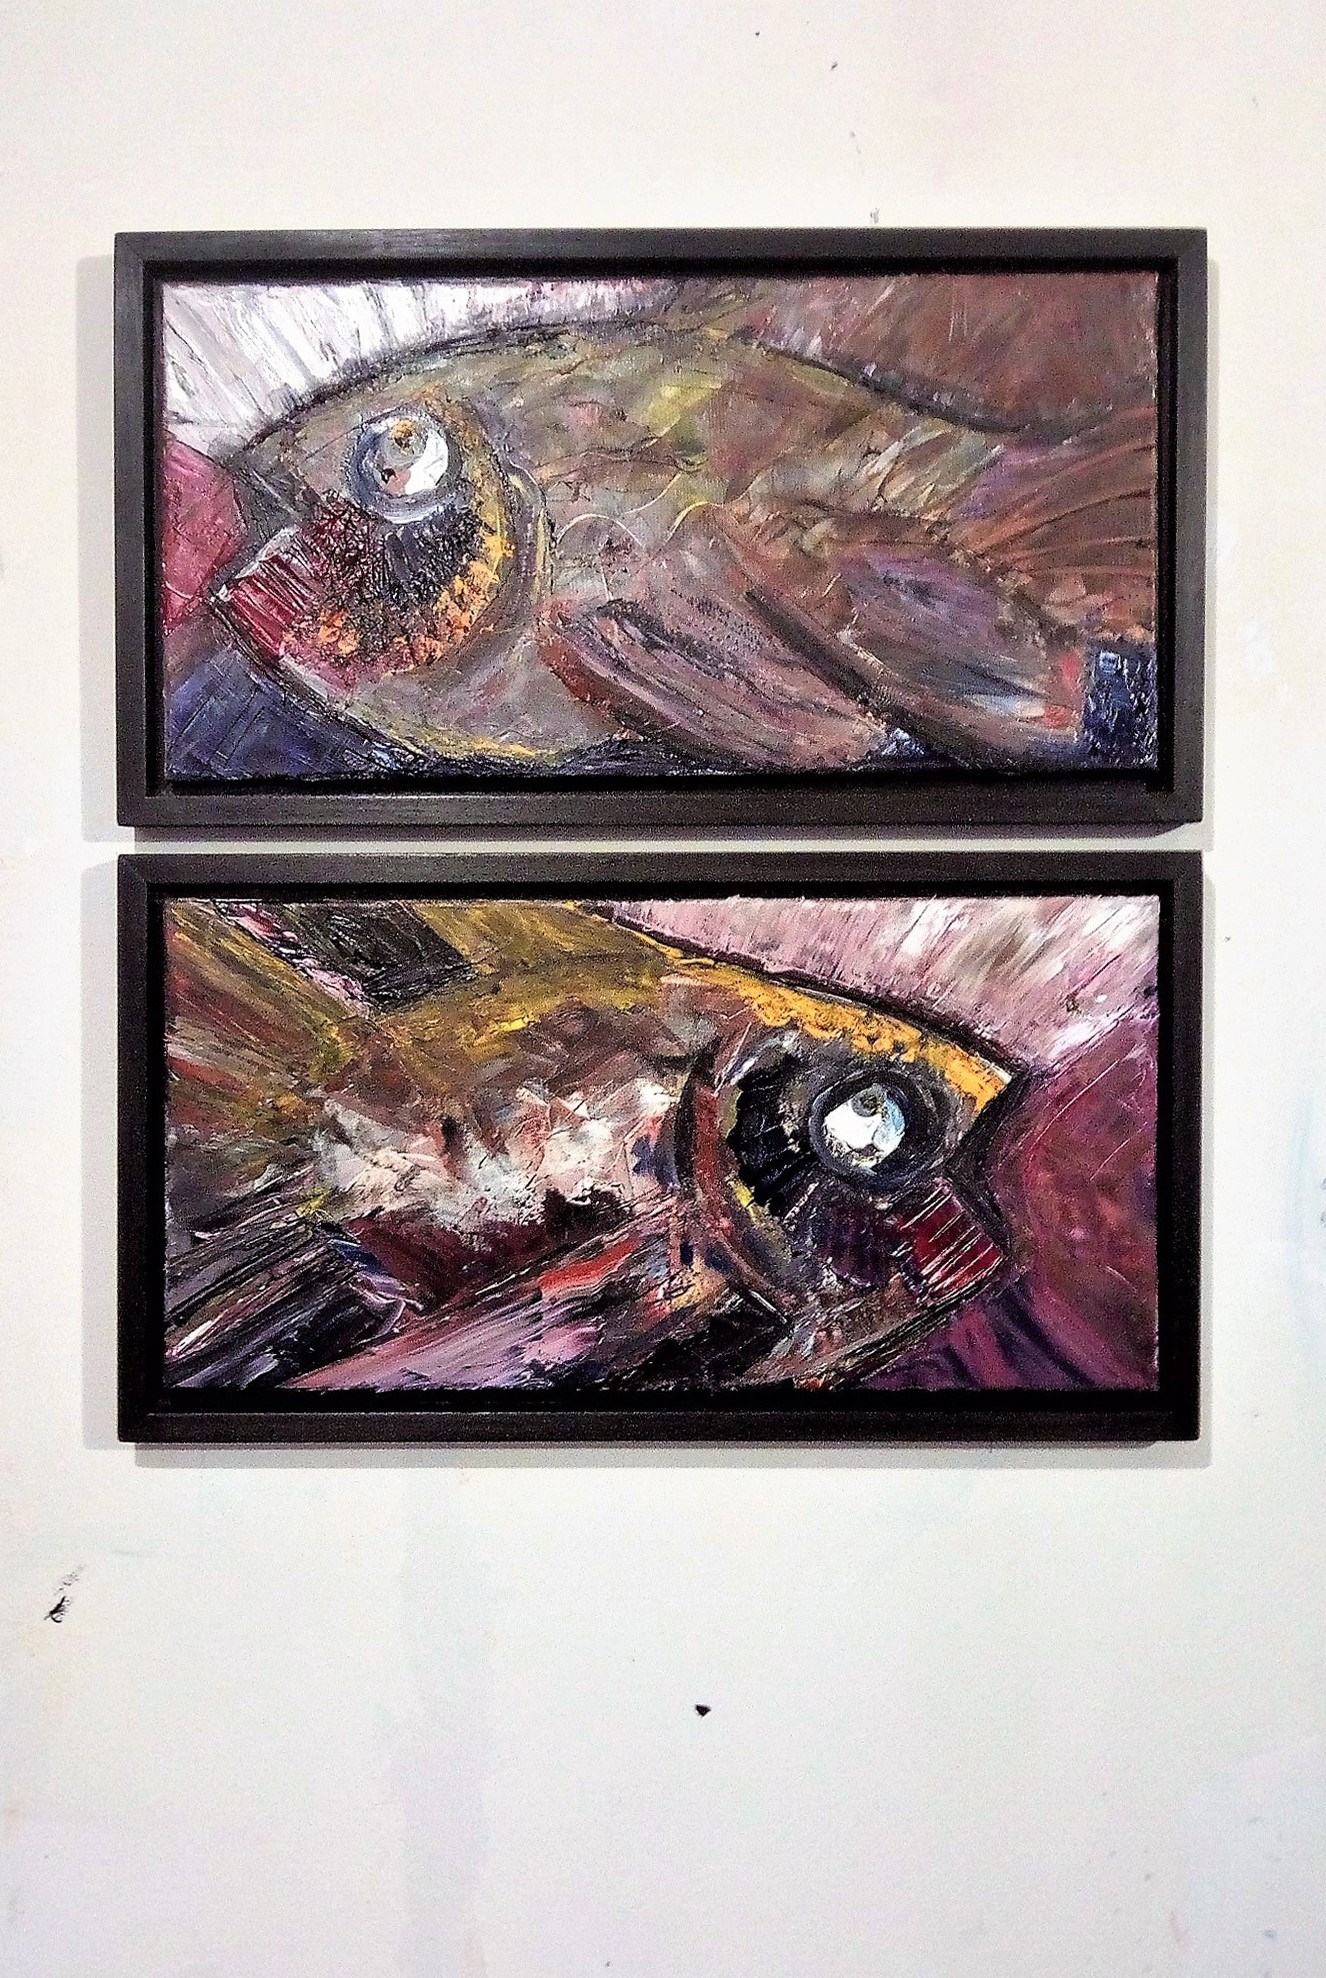 FISH IN OIL 2018 Image